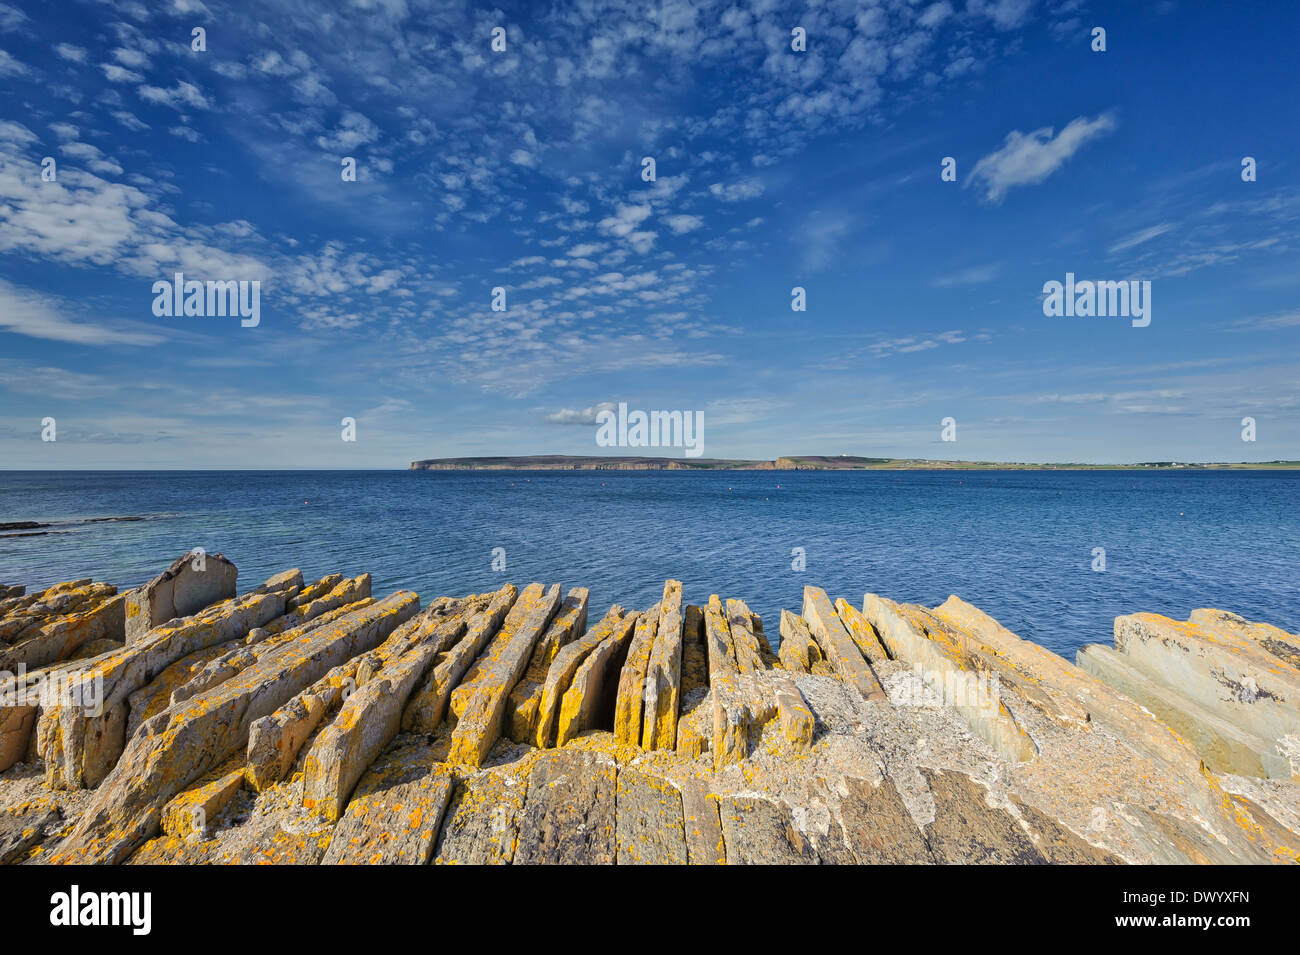 The harbour wall at Castletown made from flagstones, looking across to Dunnet Head, Caithness, Scotland. - Stock Image